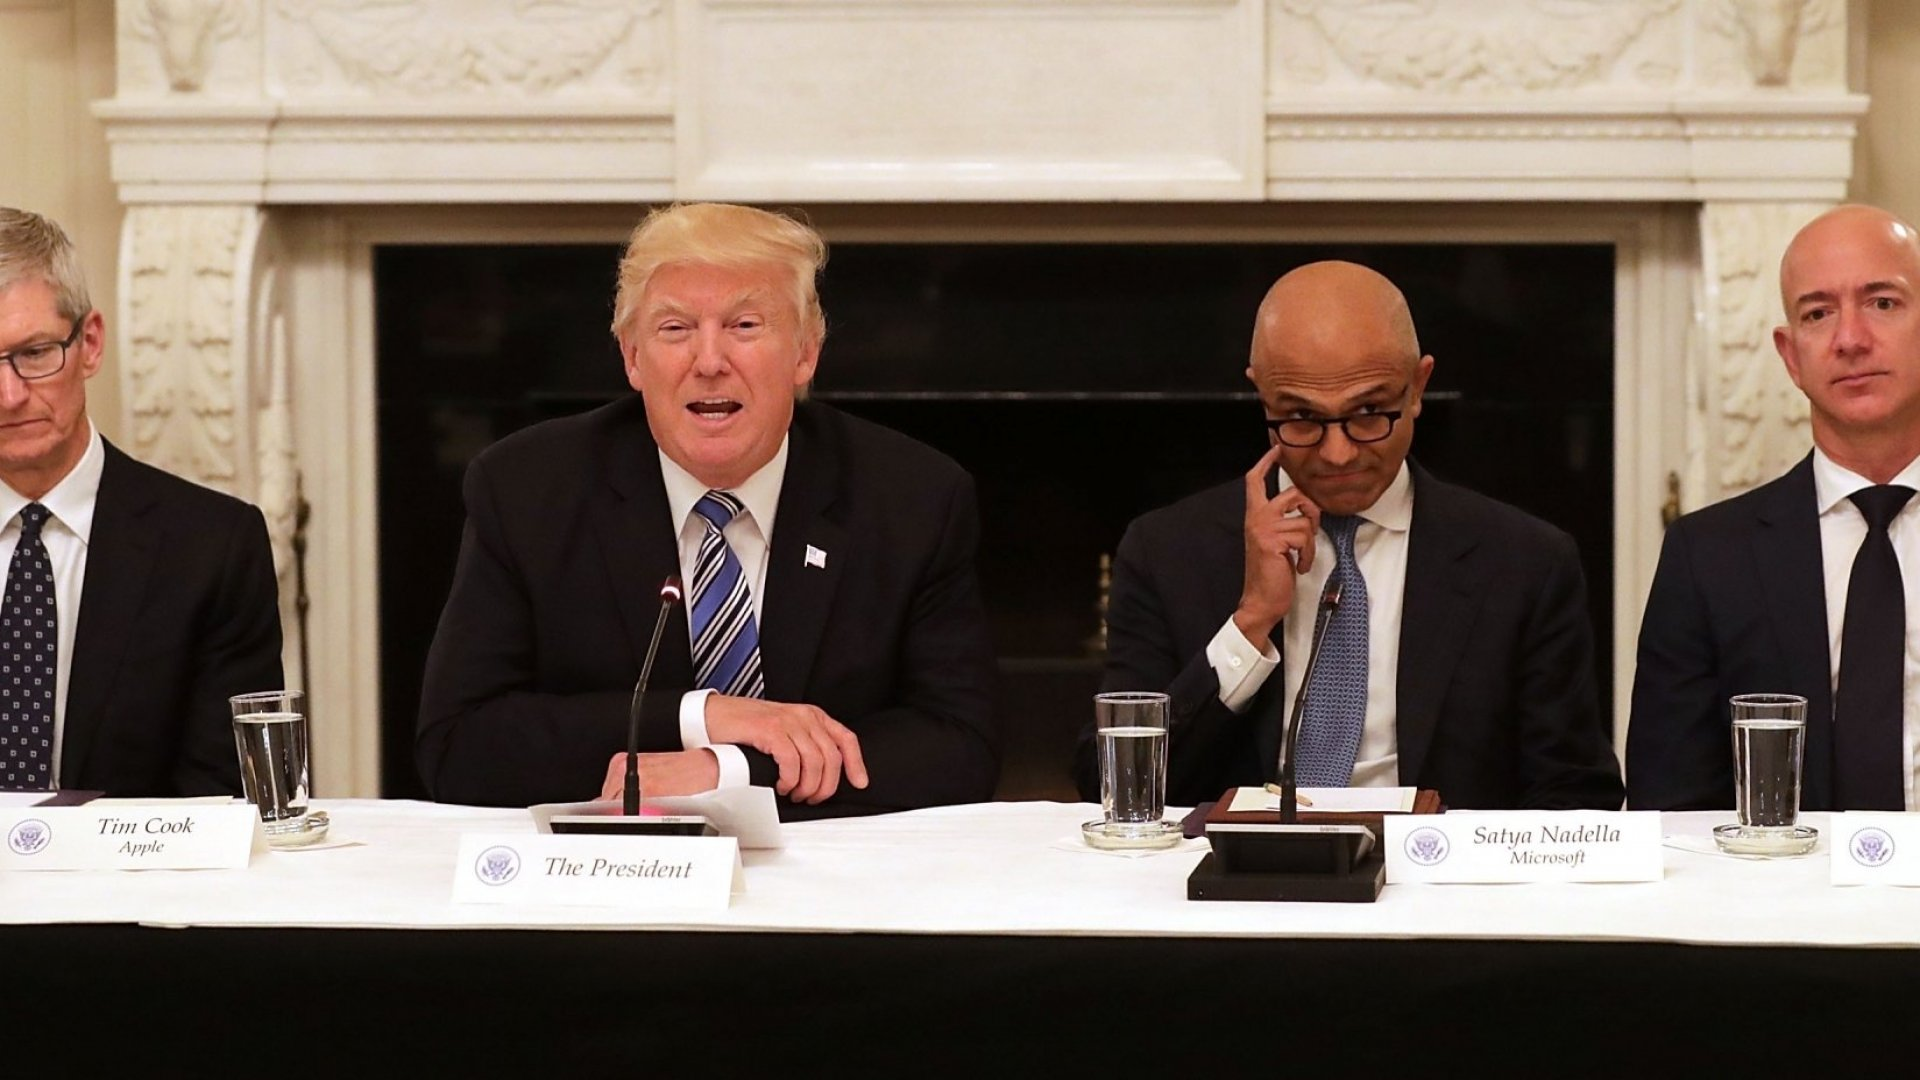 President Donald Trump welcomes members of his American Technology Council, including (L-R) Apple CEO Tim Cook, Microsoft CEO Satya Nadella and Amazon CEO Jeff Bezos in the State Dining Room of the White House June 19, 2017 in Washington, DC. According to the White House, the council's goal is 'to explore how to transform and modernize government information technology.'